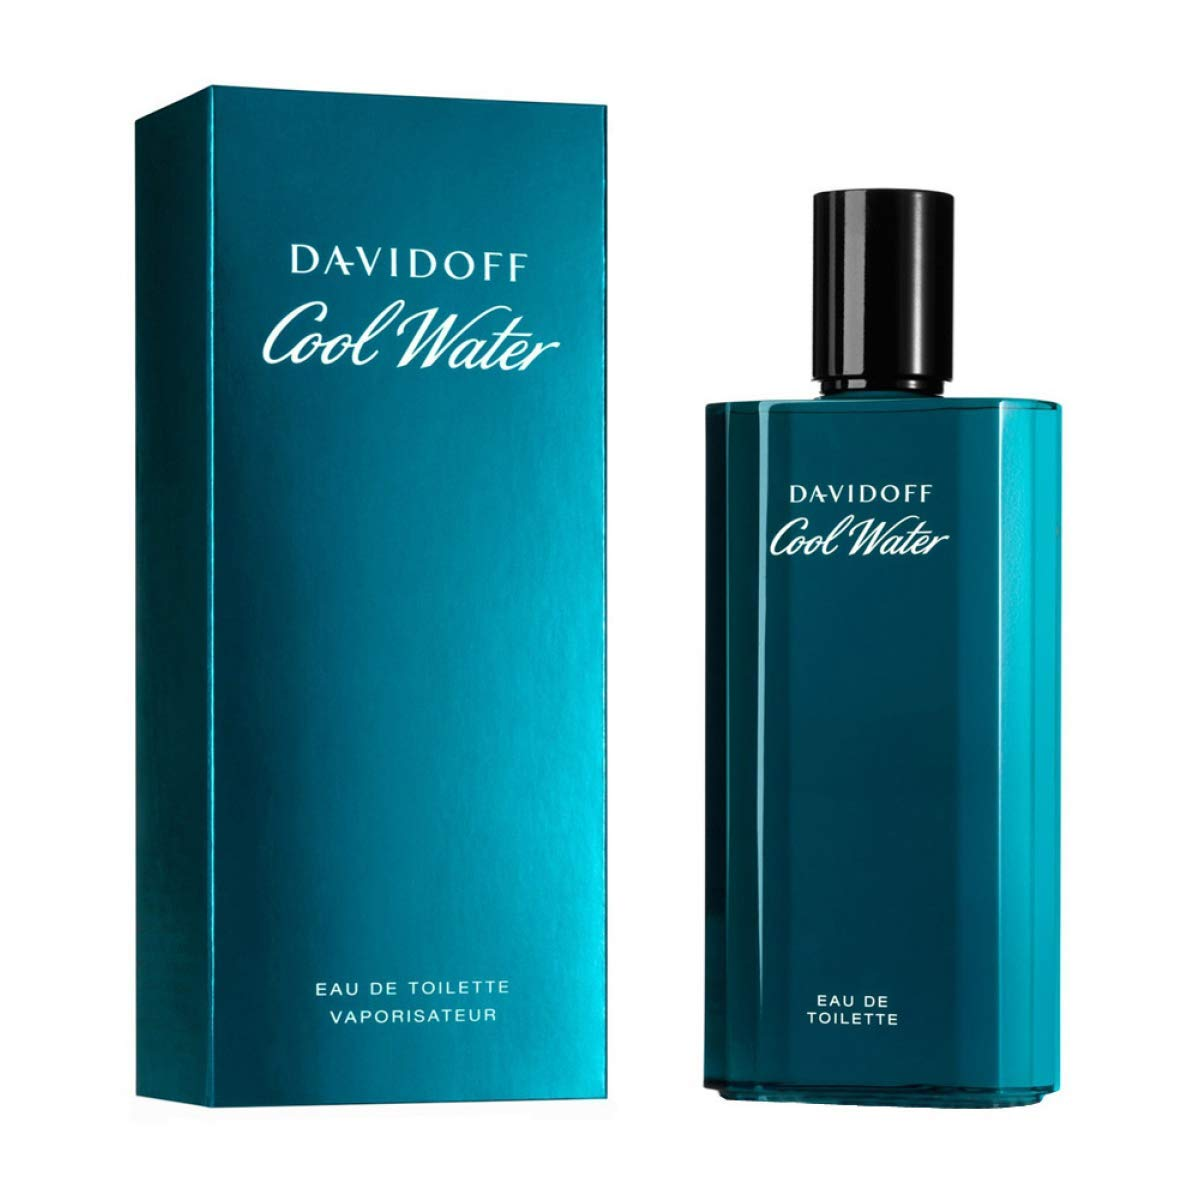 Cool Water Cologne by Davidoff, Eau De Toilette Spray for Men,4.2 Fl Oz, Pack of 1